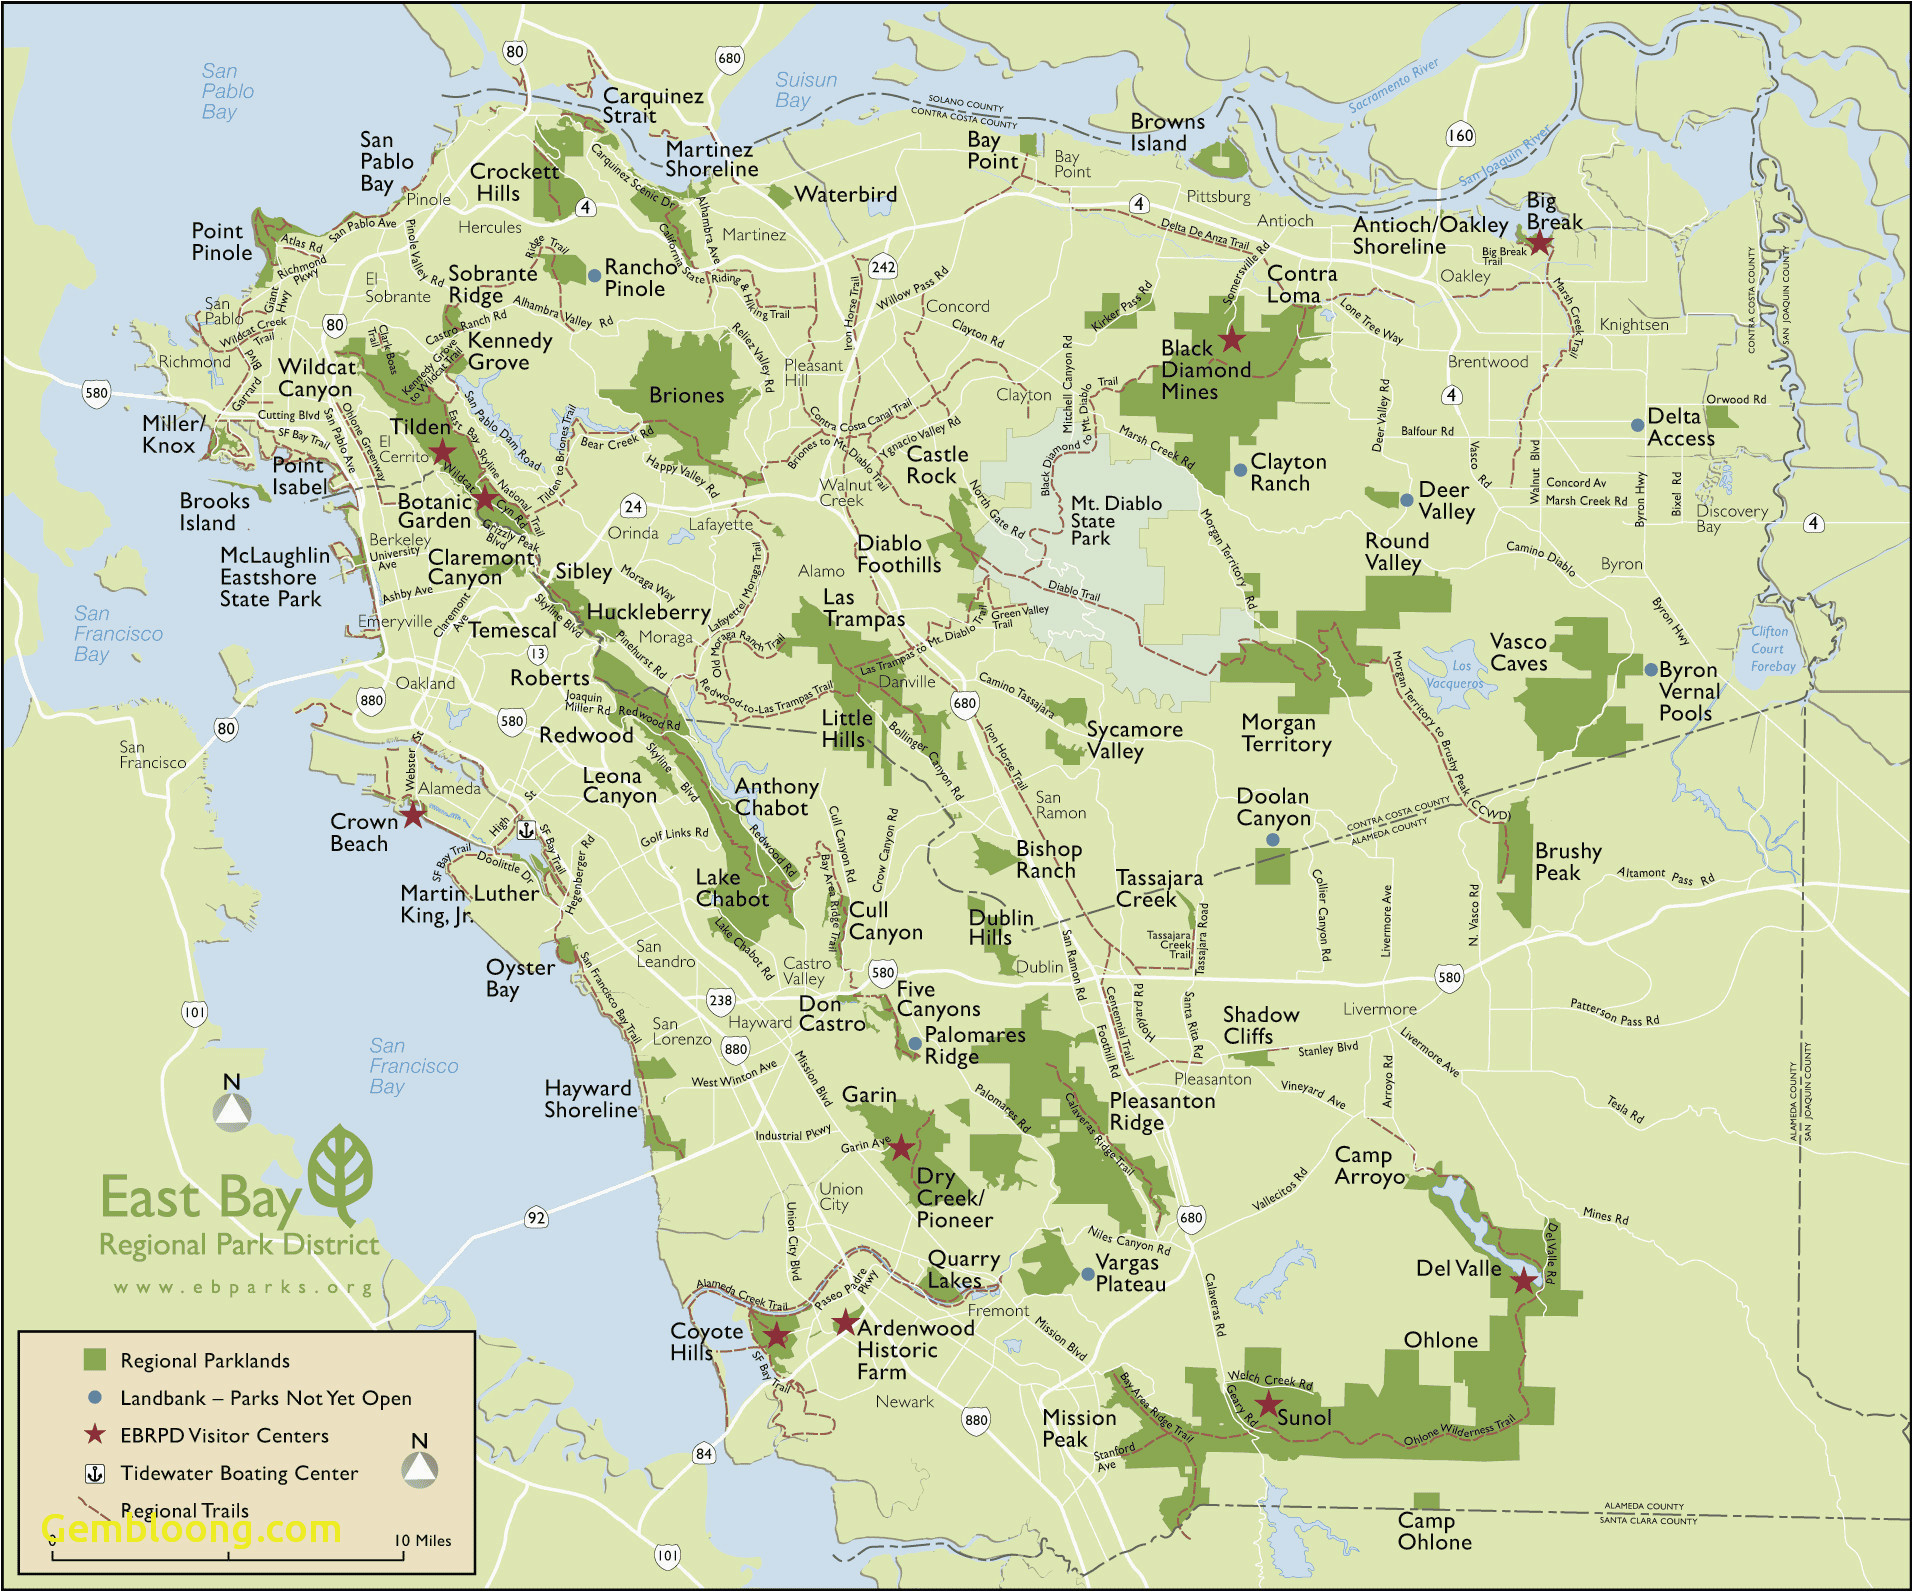 Russian River California Map California Rivers Map Best Of ... on